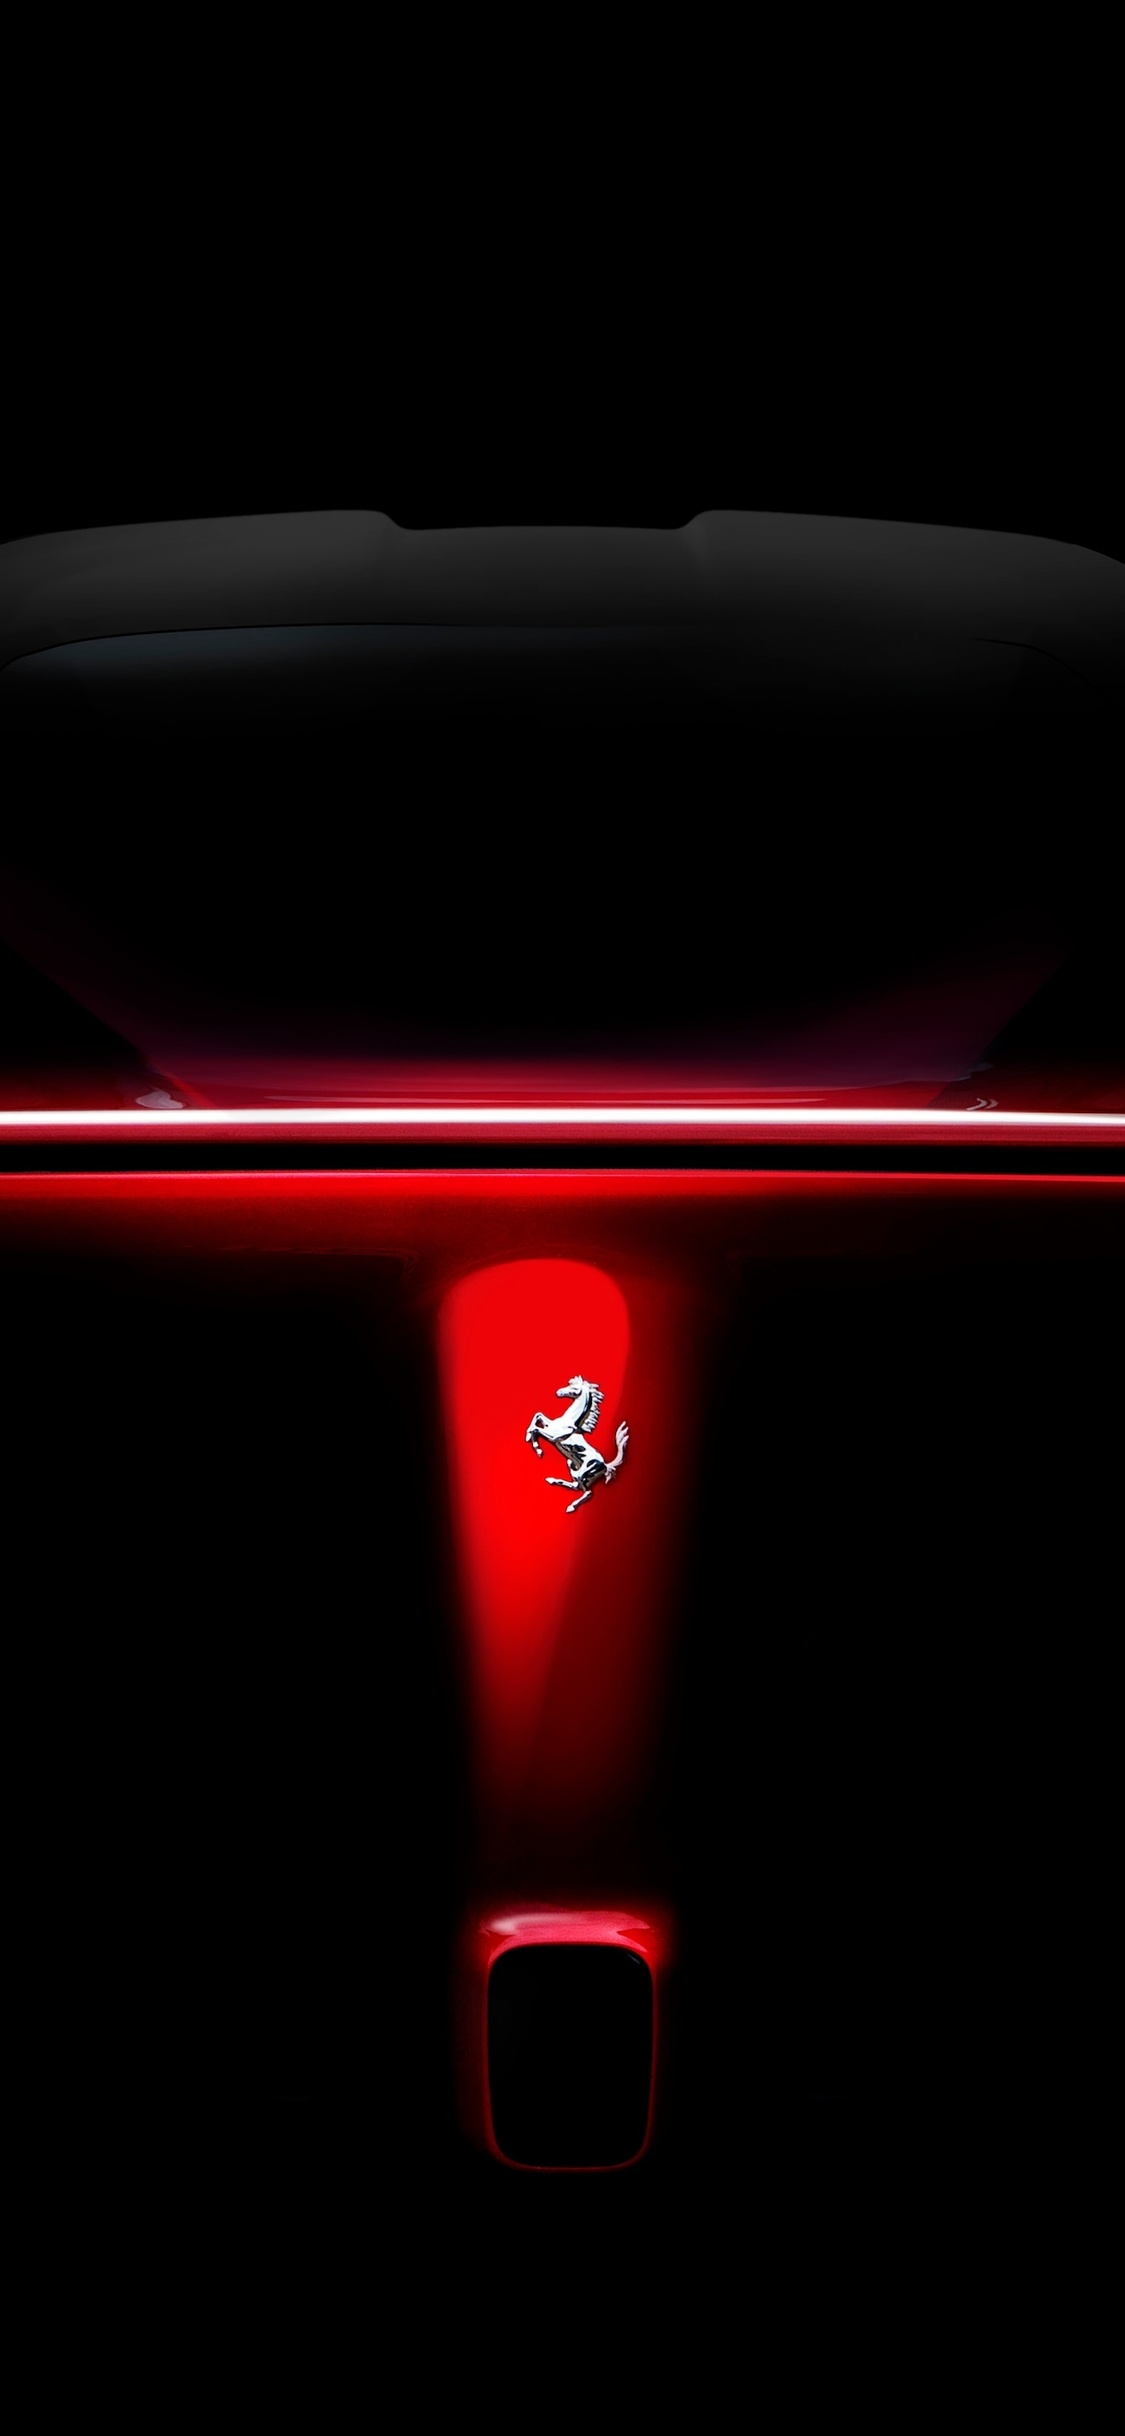 Beautiful Ultra Hd Ferrari Logo Wallpaper Hd For Iphone Photos